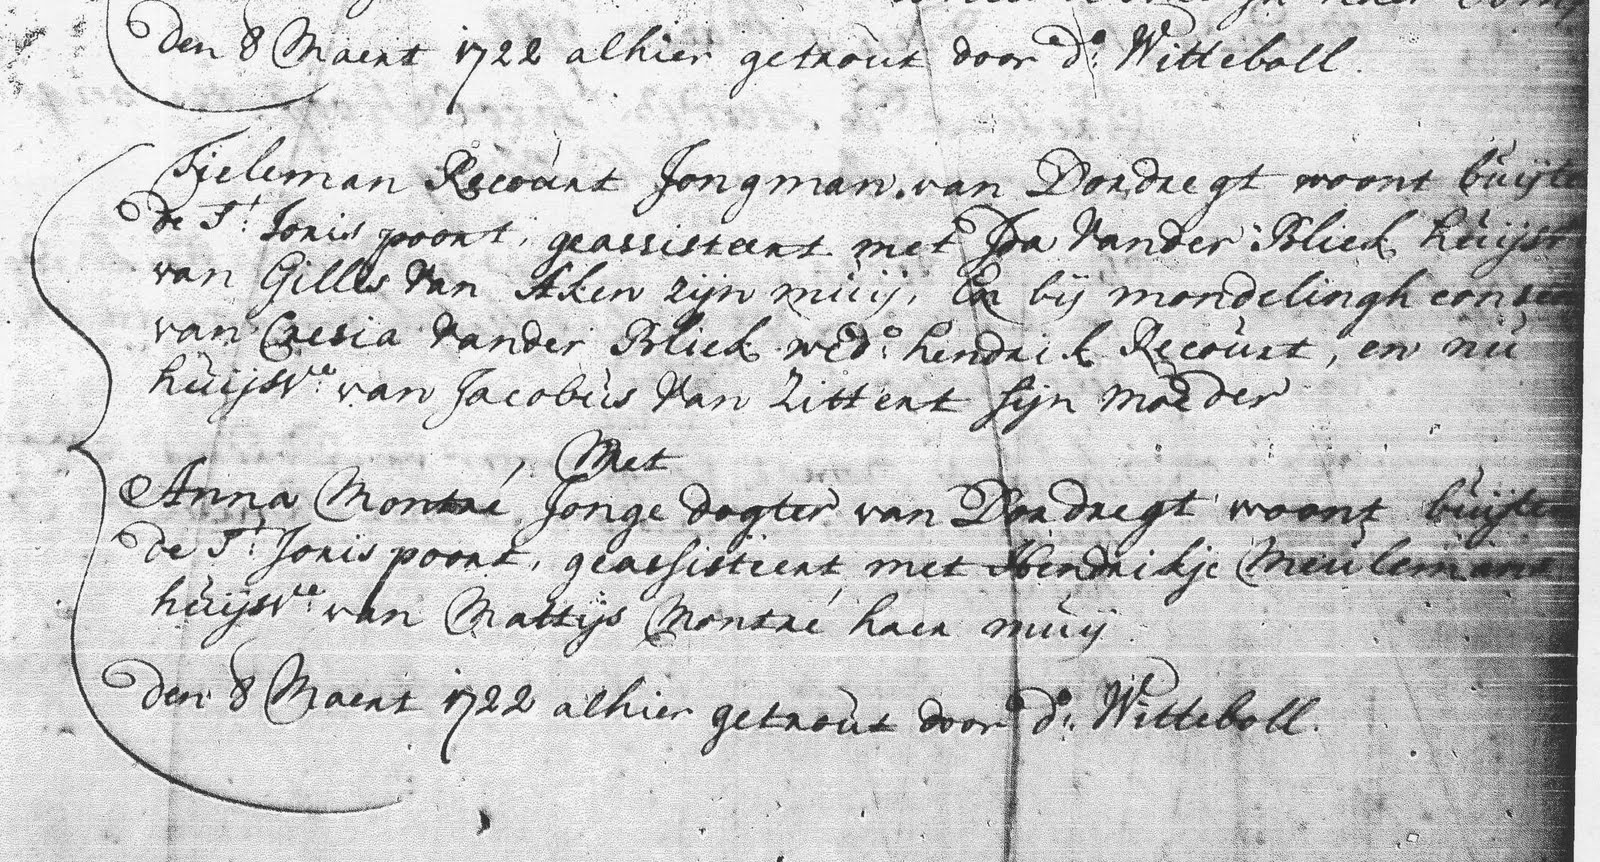 Searching for the roots of recourt roucourt family